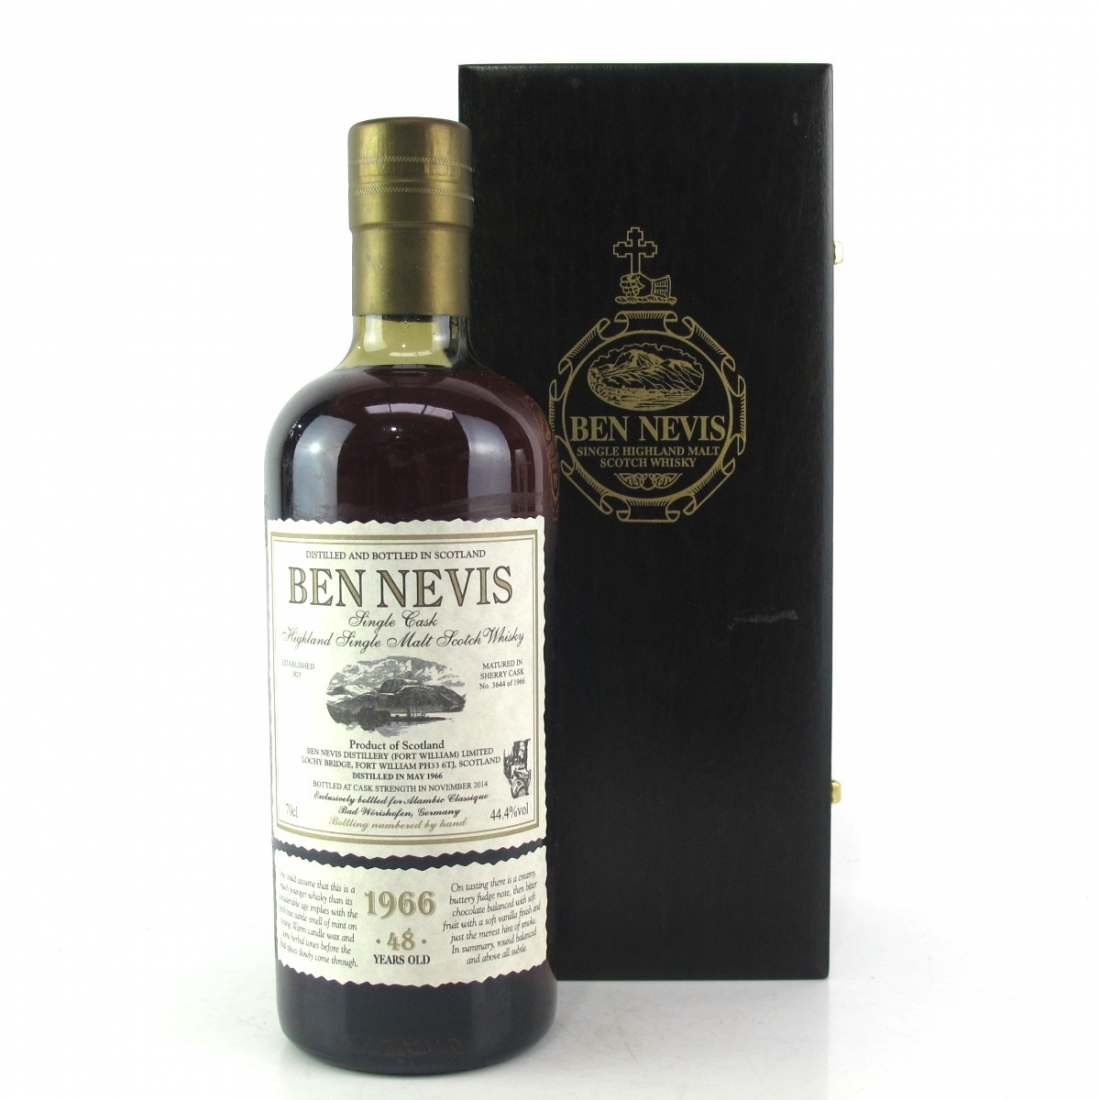 Ben Nevis 1966 Single Cask 48 Year Old #3644 / Alambic Classique